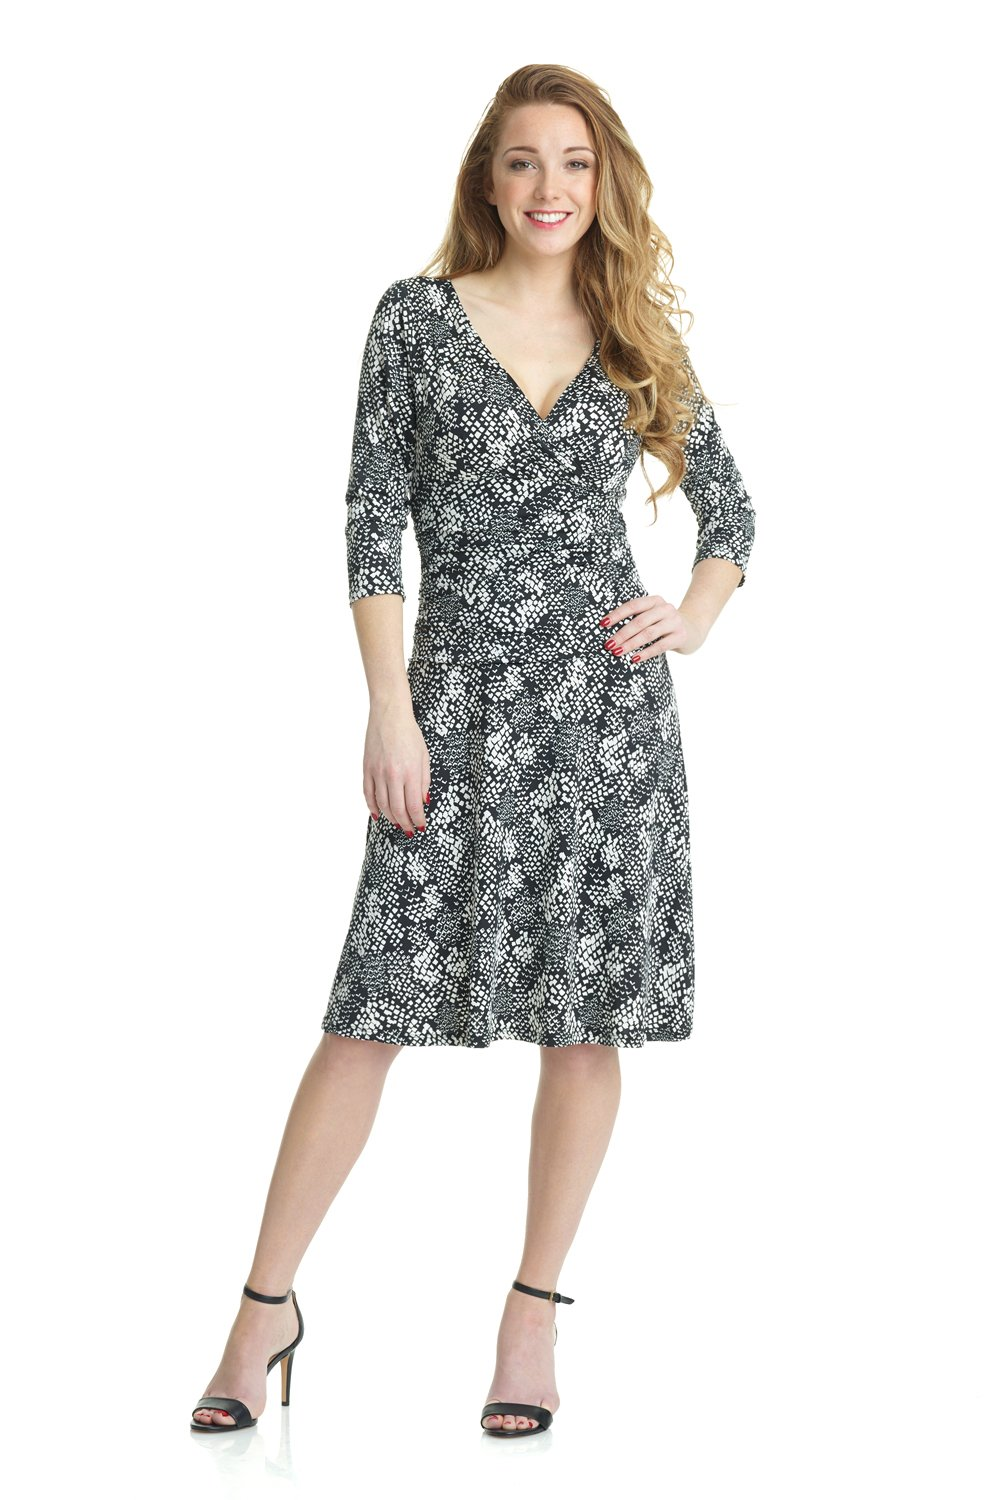 Rekucci Women's Slimming 3/4 Sleeve Fit-and-Flare Crossover Tummy Control Dress (14,Modern Snake)